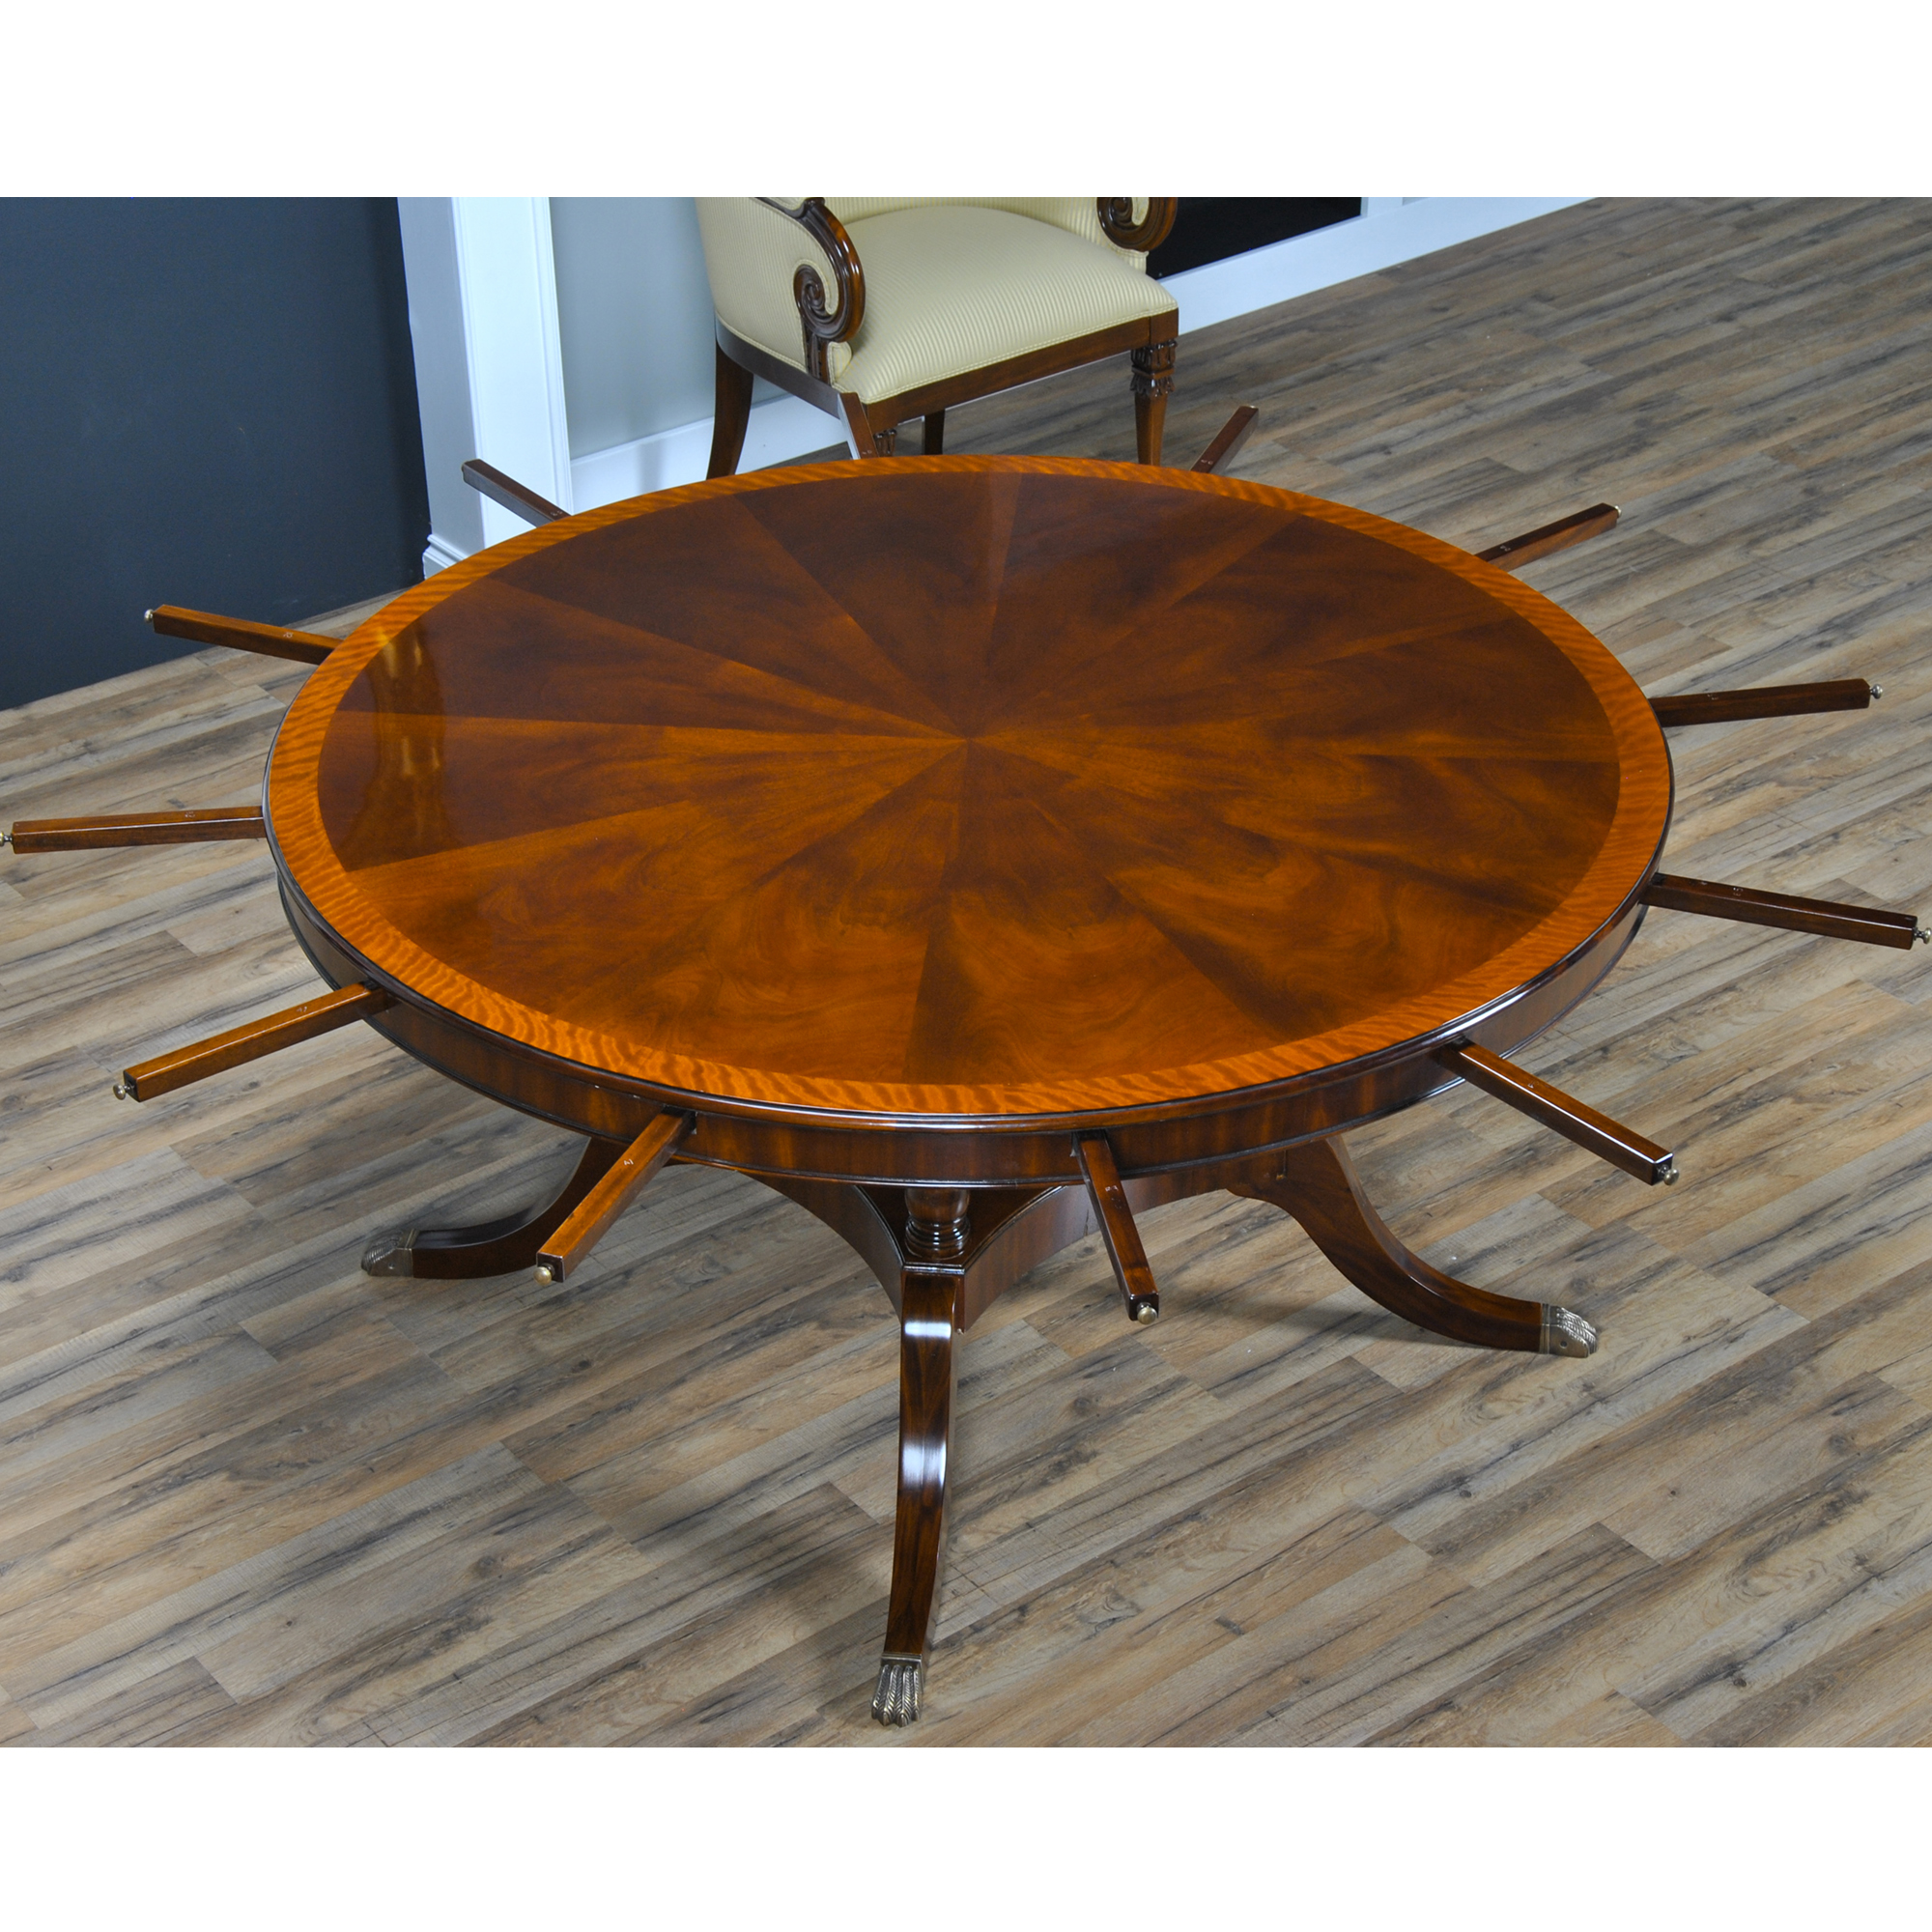 dining room tables 84 inch round perimeter table ndrt047